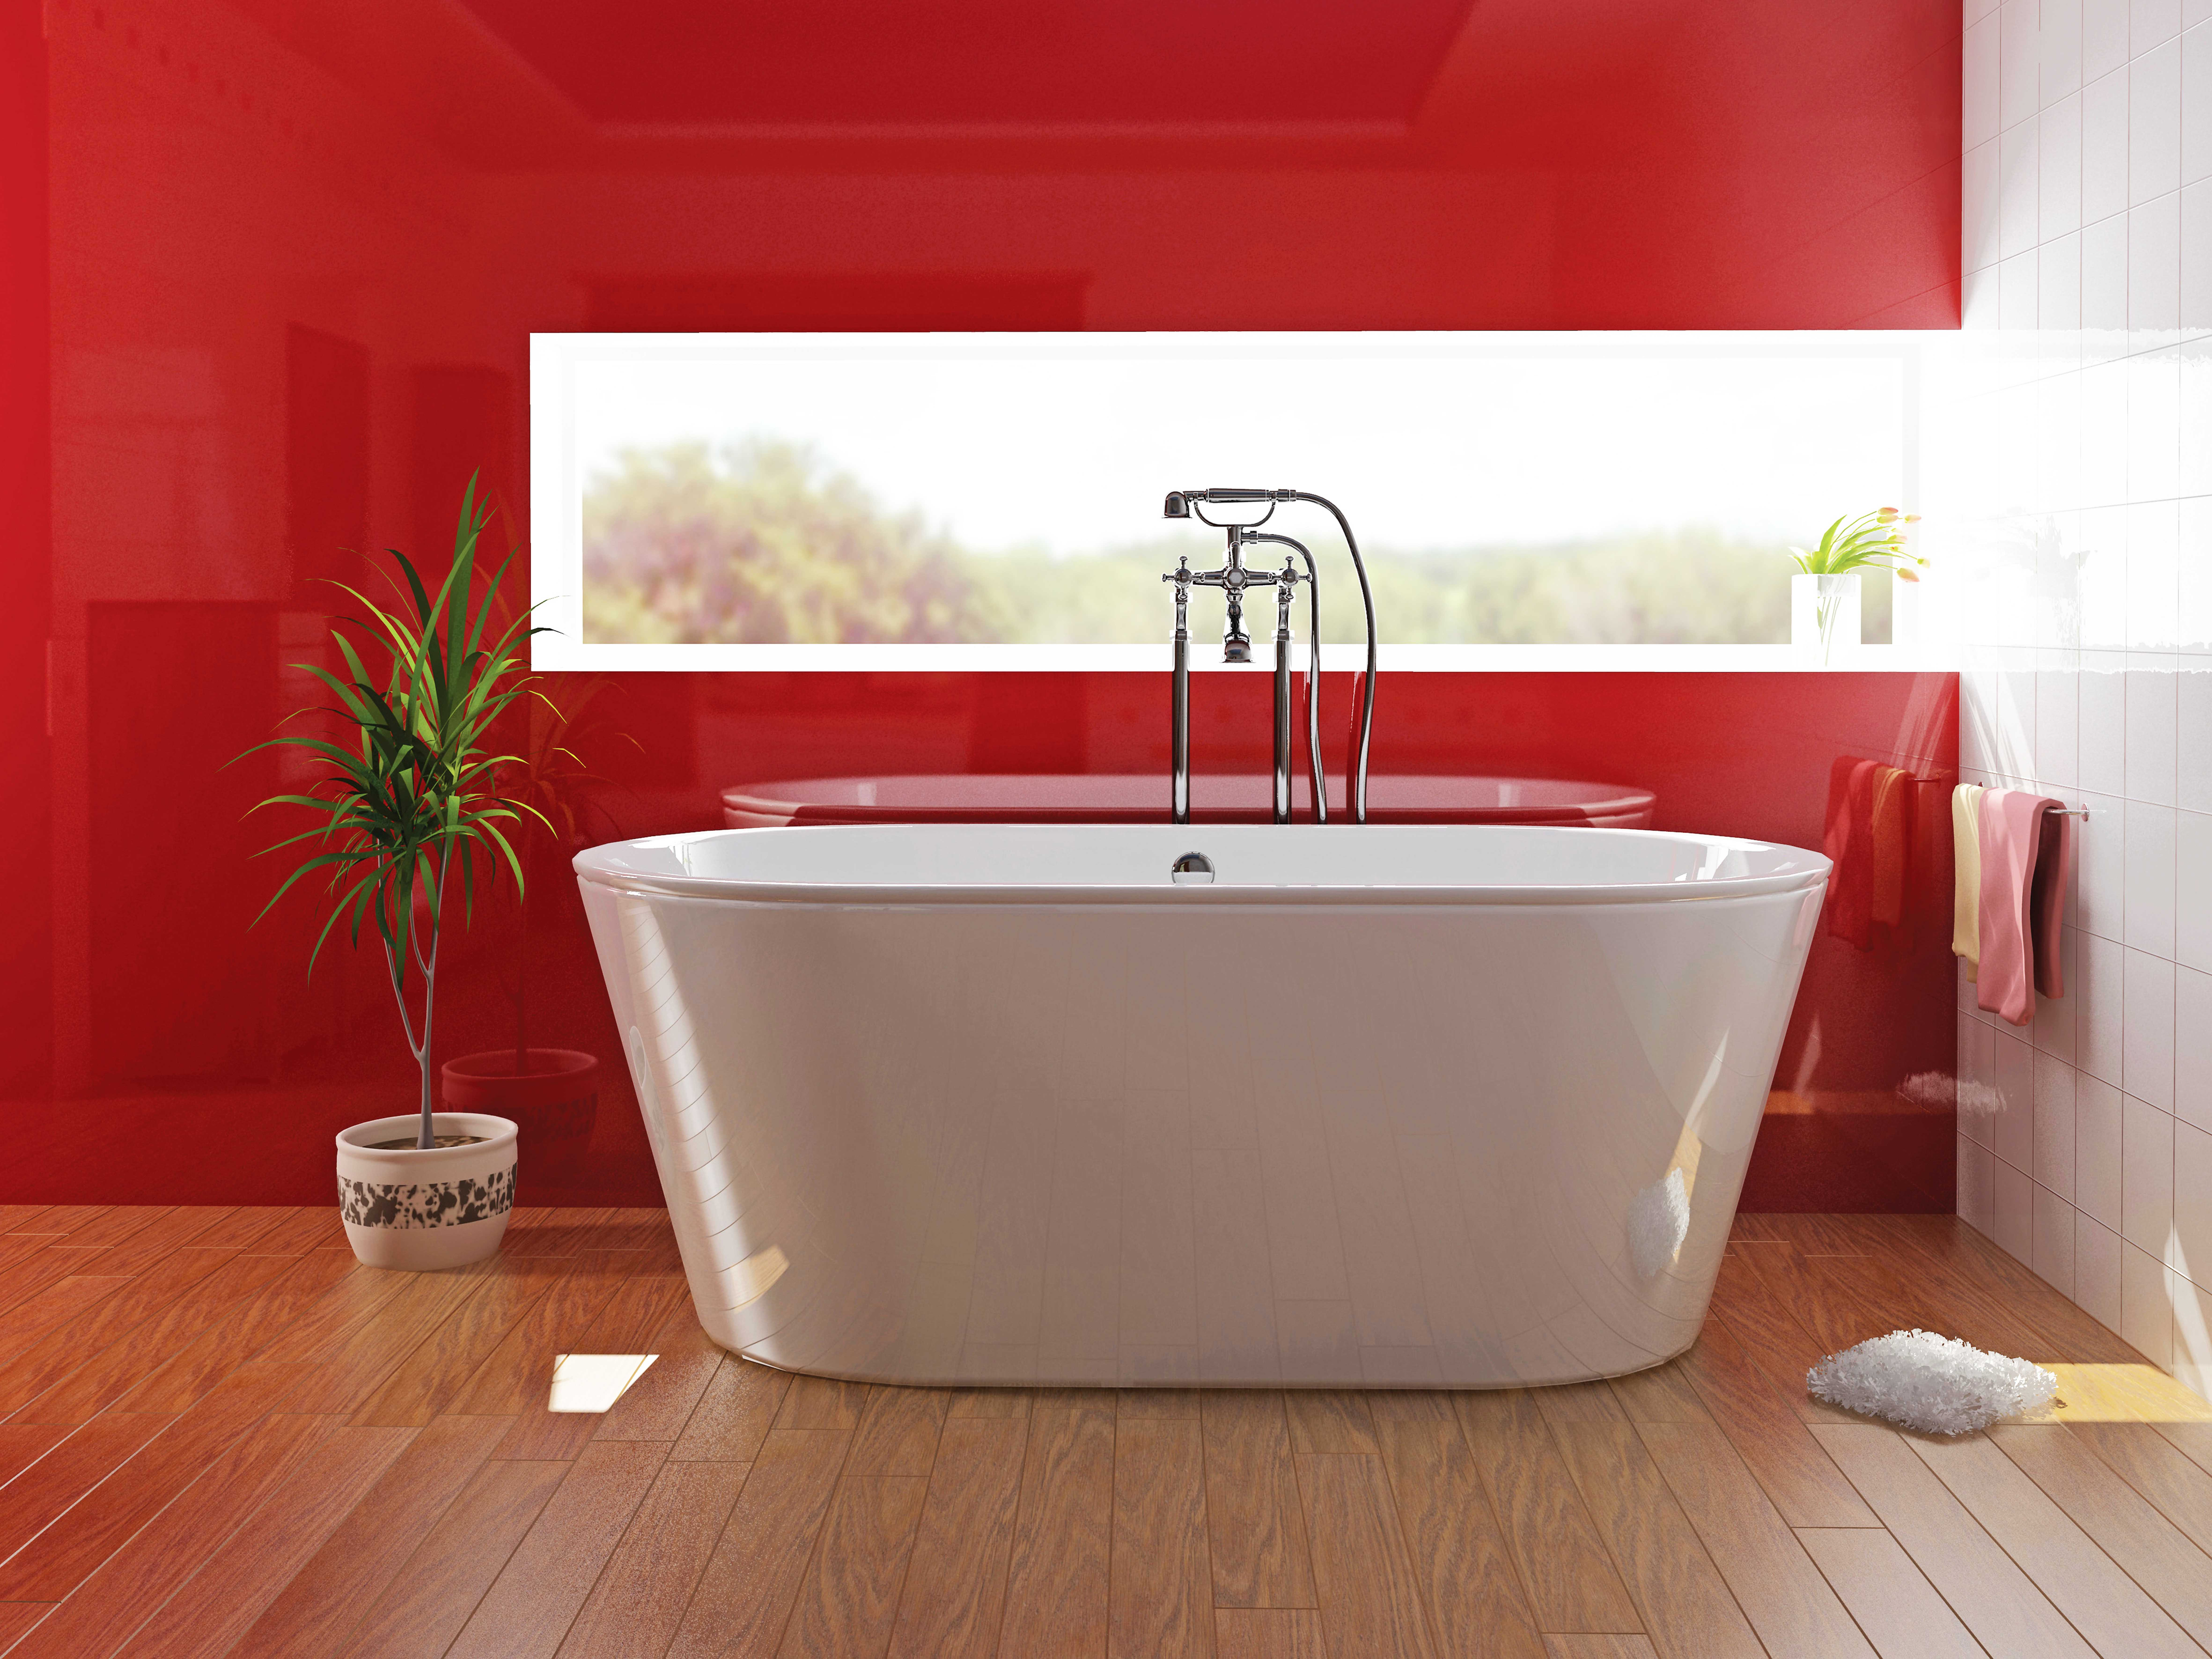 Acrylic sheets for bathroom walls - Ipswich Bathroom Centre Get Multi Layer Acrylic Paneling From